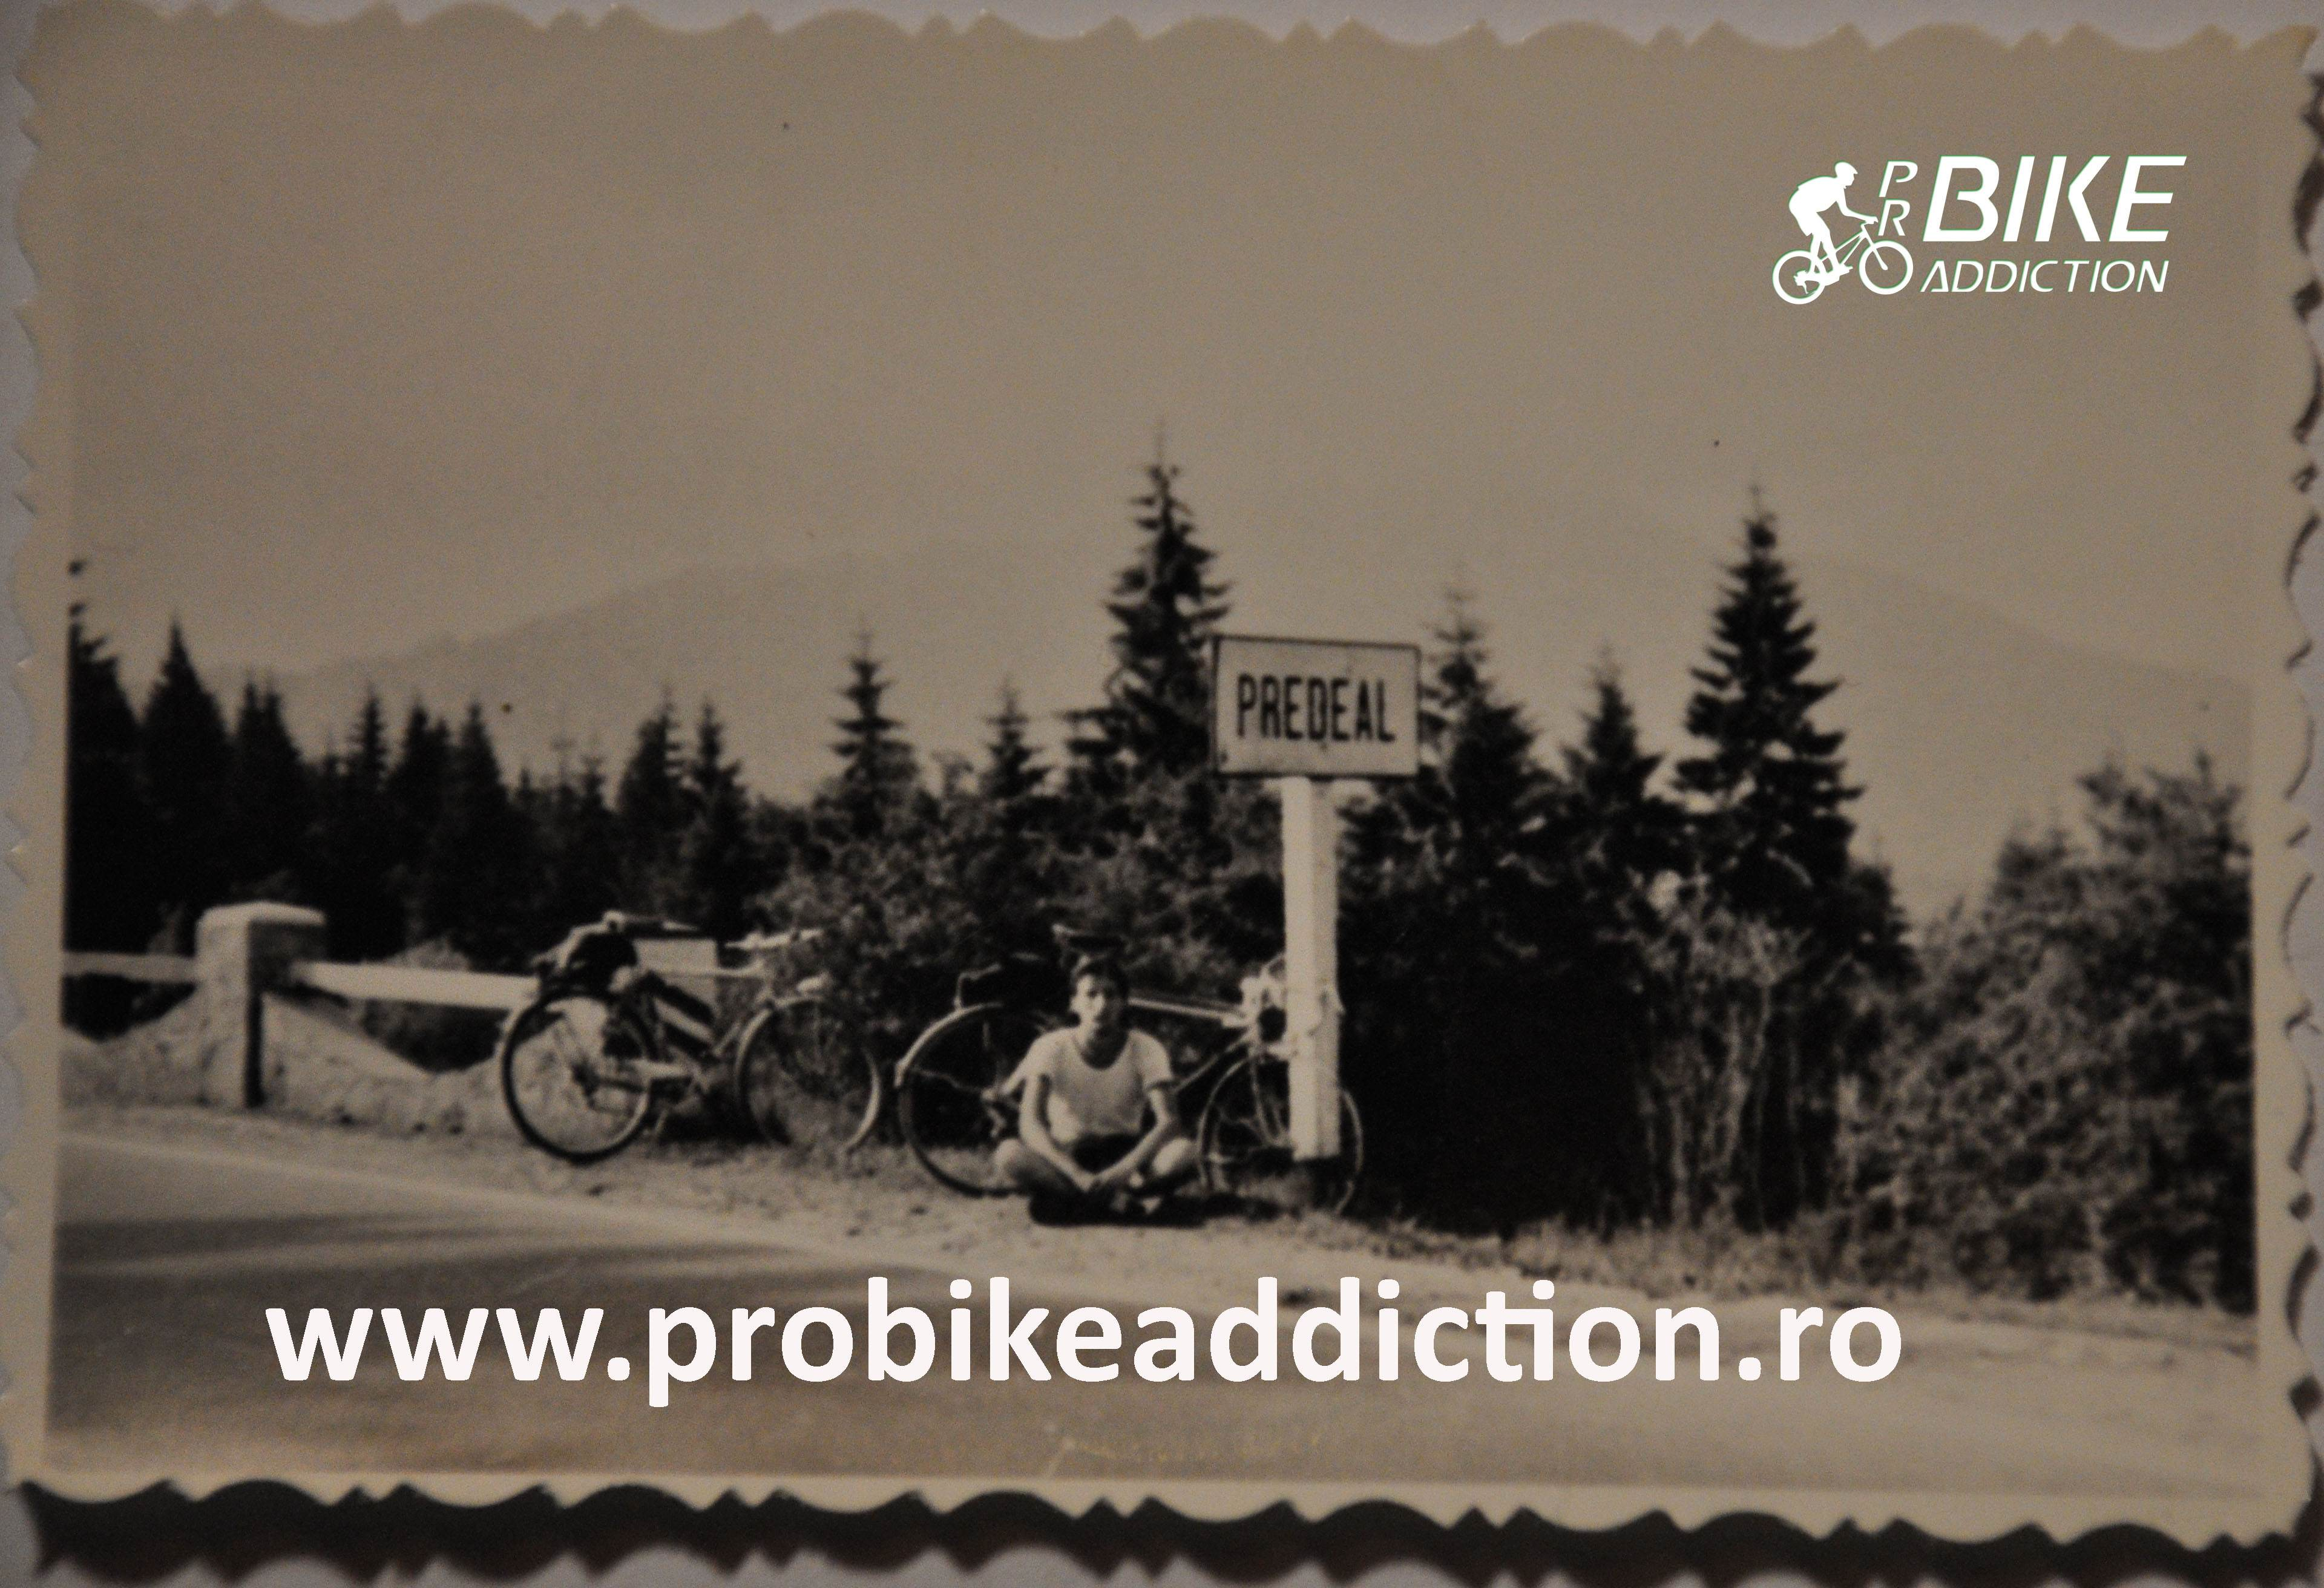 probikeaddiction bucegi cicloturism anii 70 fotografii document